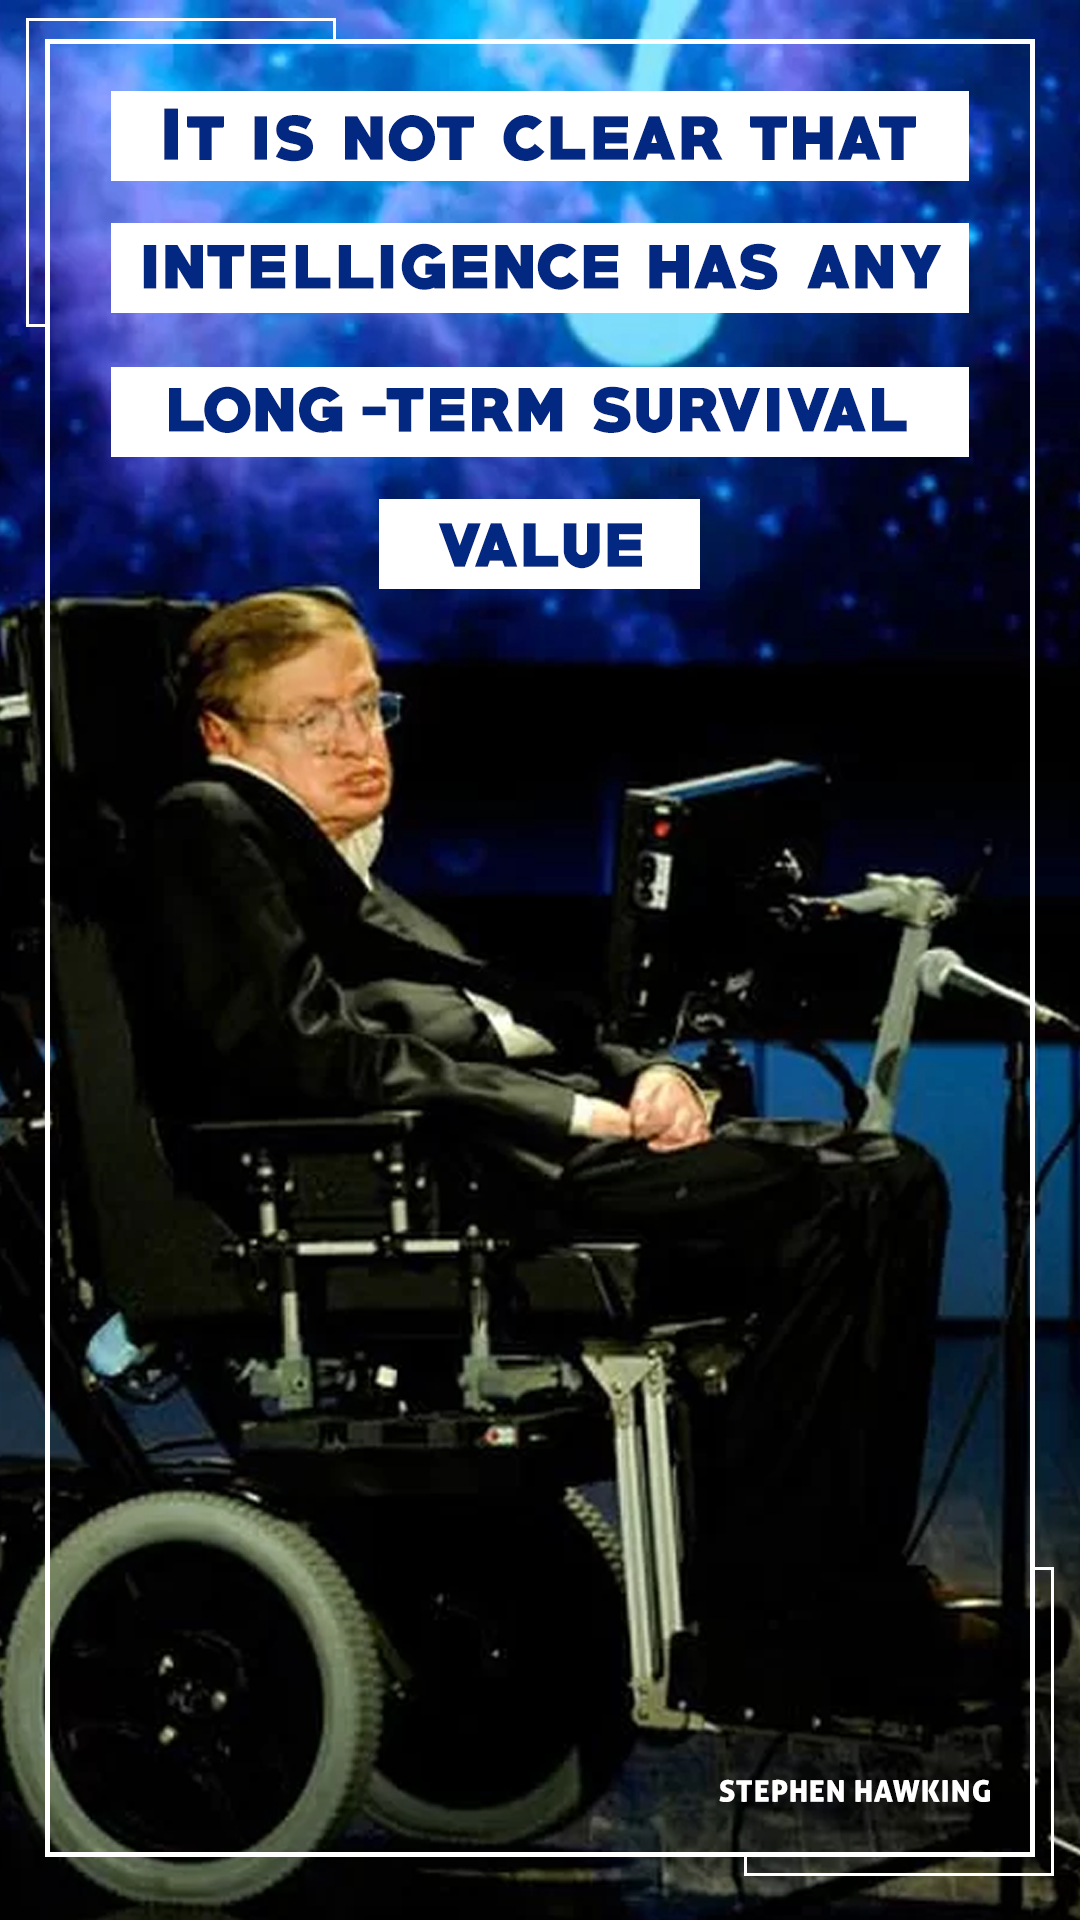 Stephen Hawking Quote Mobile Wallpaper1